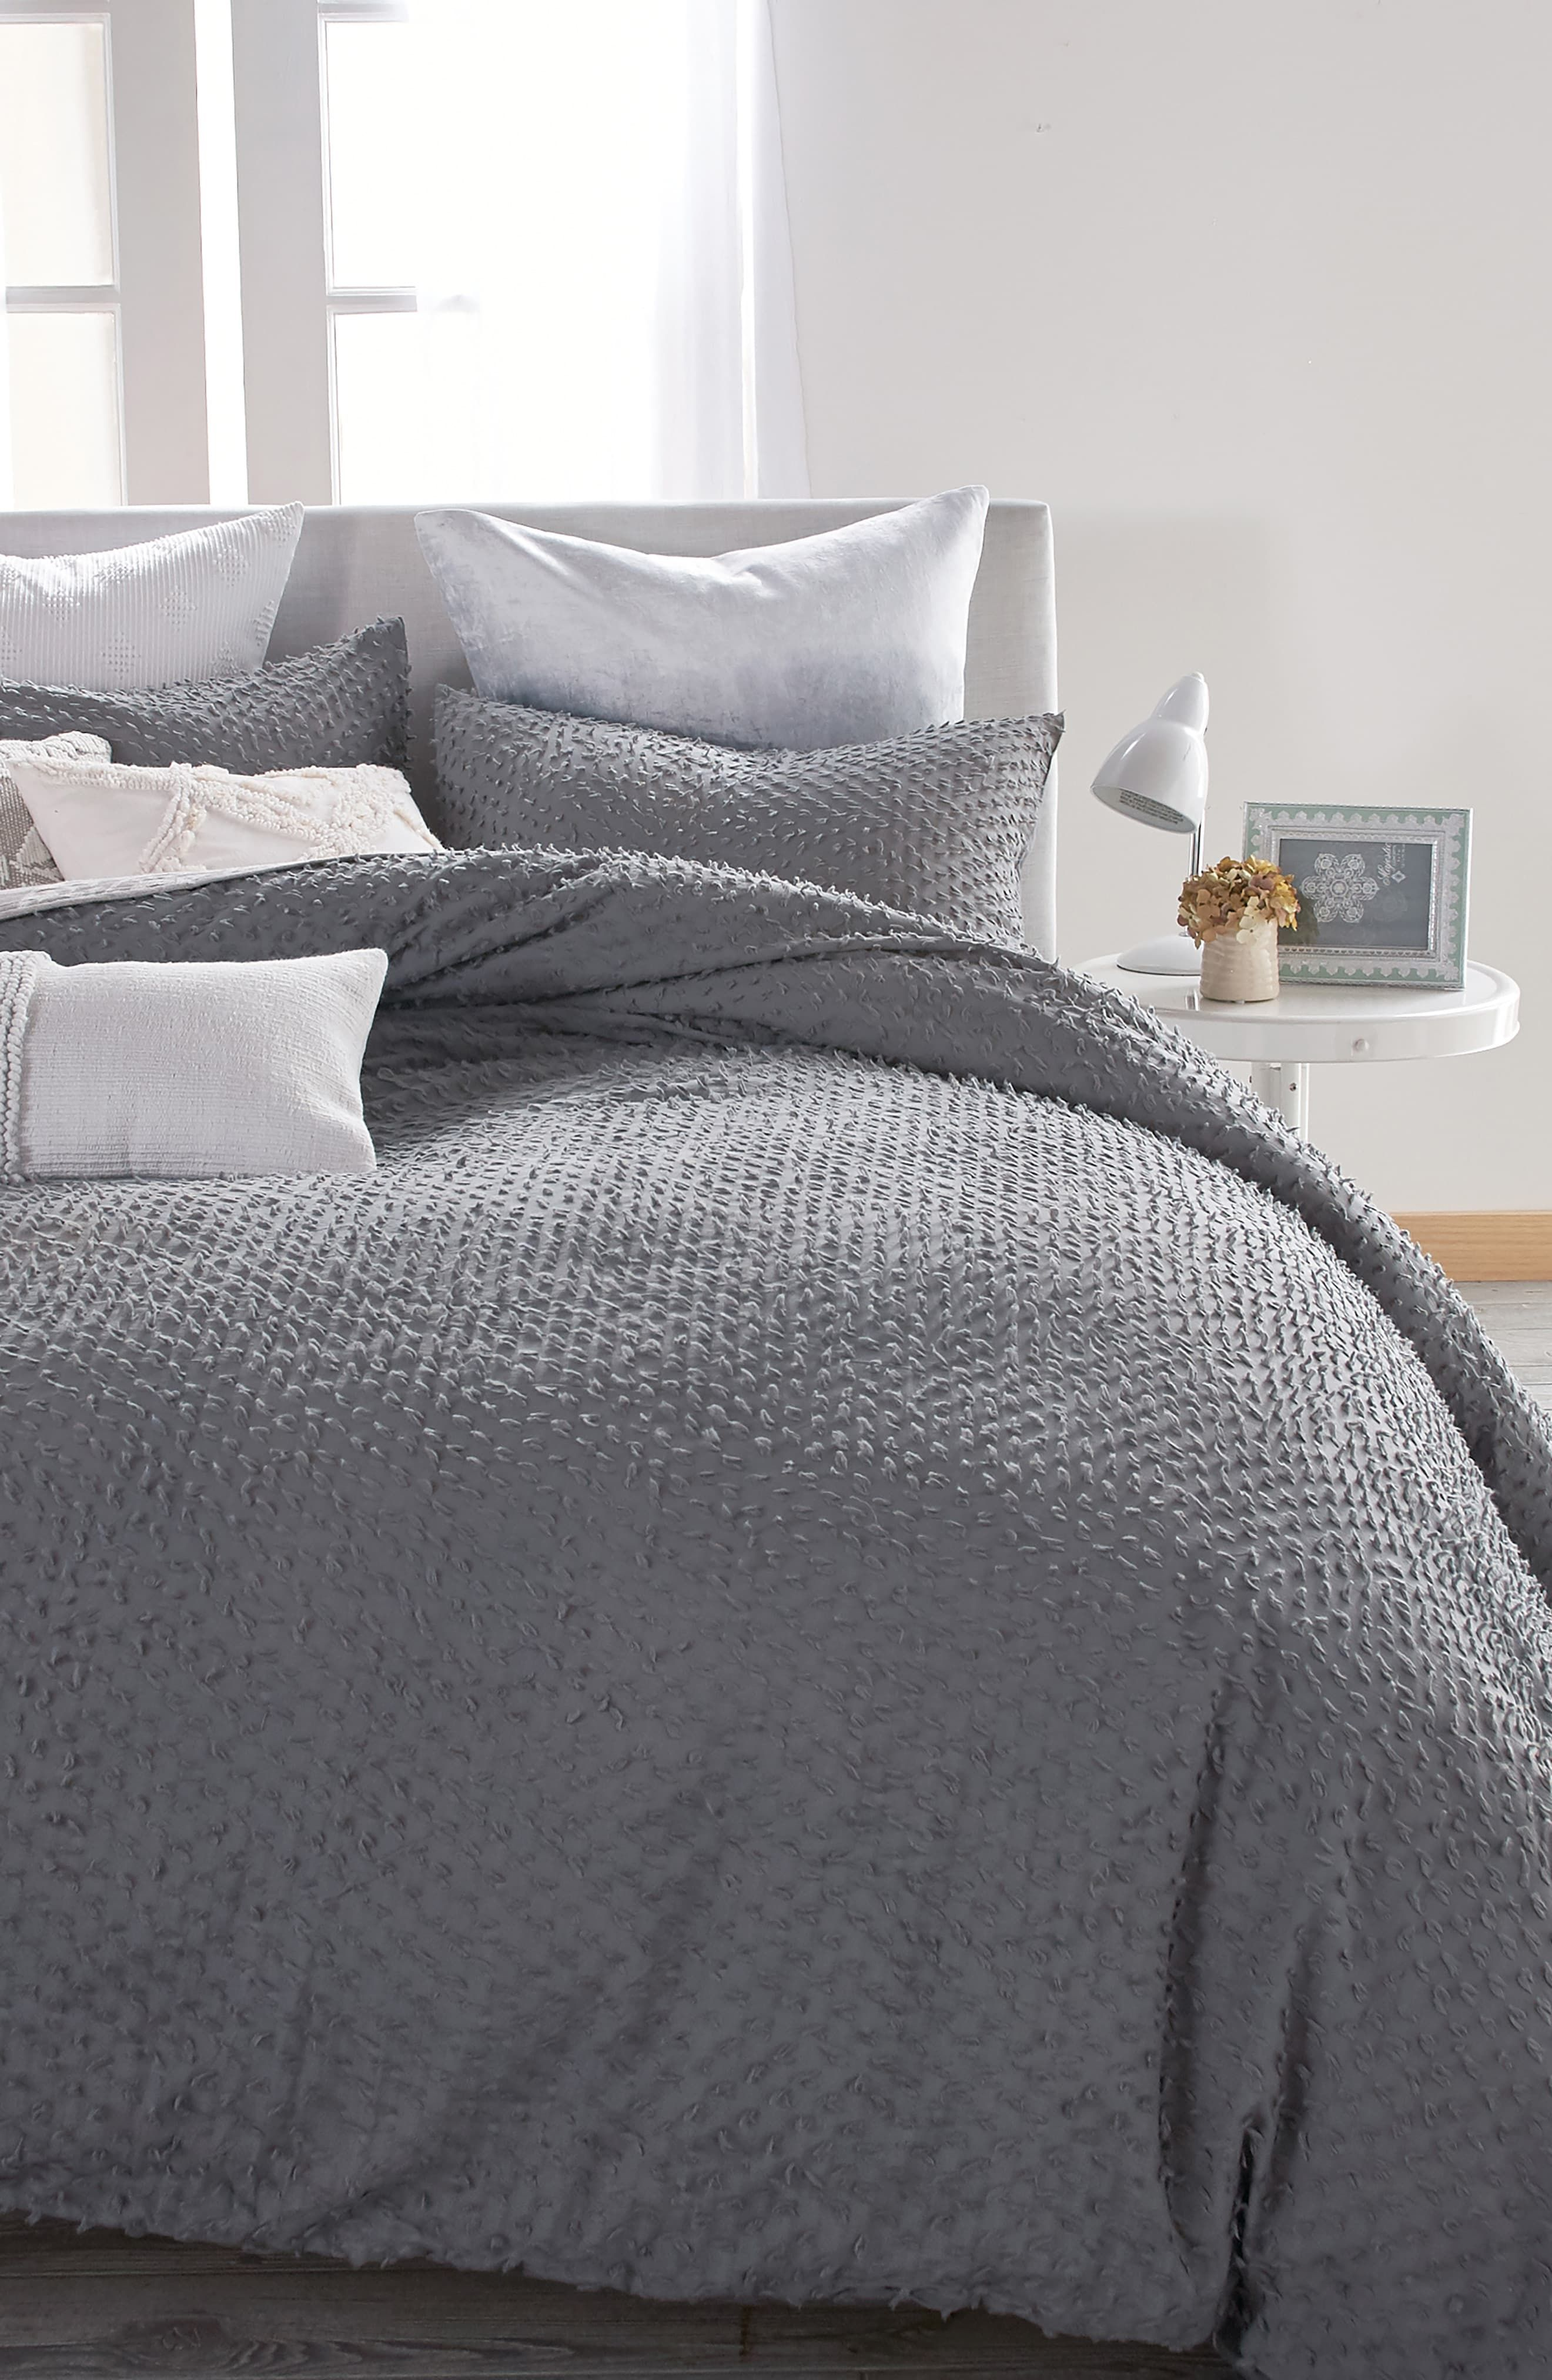 What Is A Duvet Duvet Vs Comforter Pros And Cons Of Comforters And Duvets